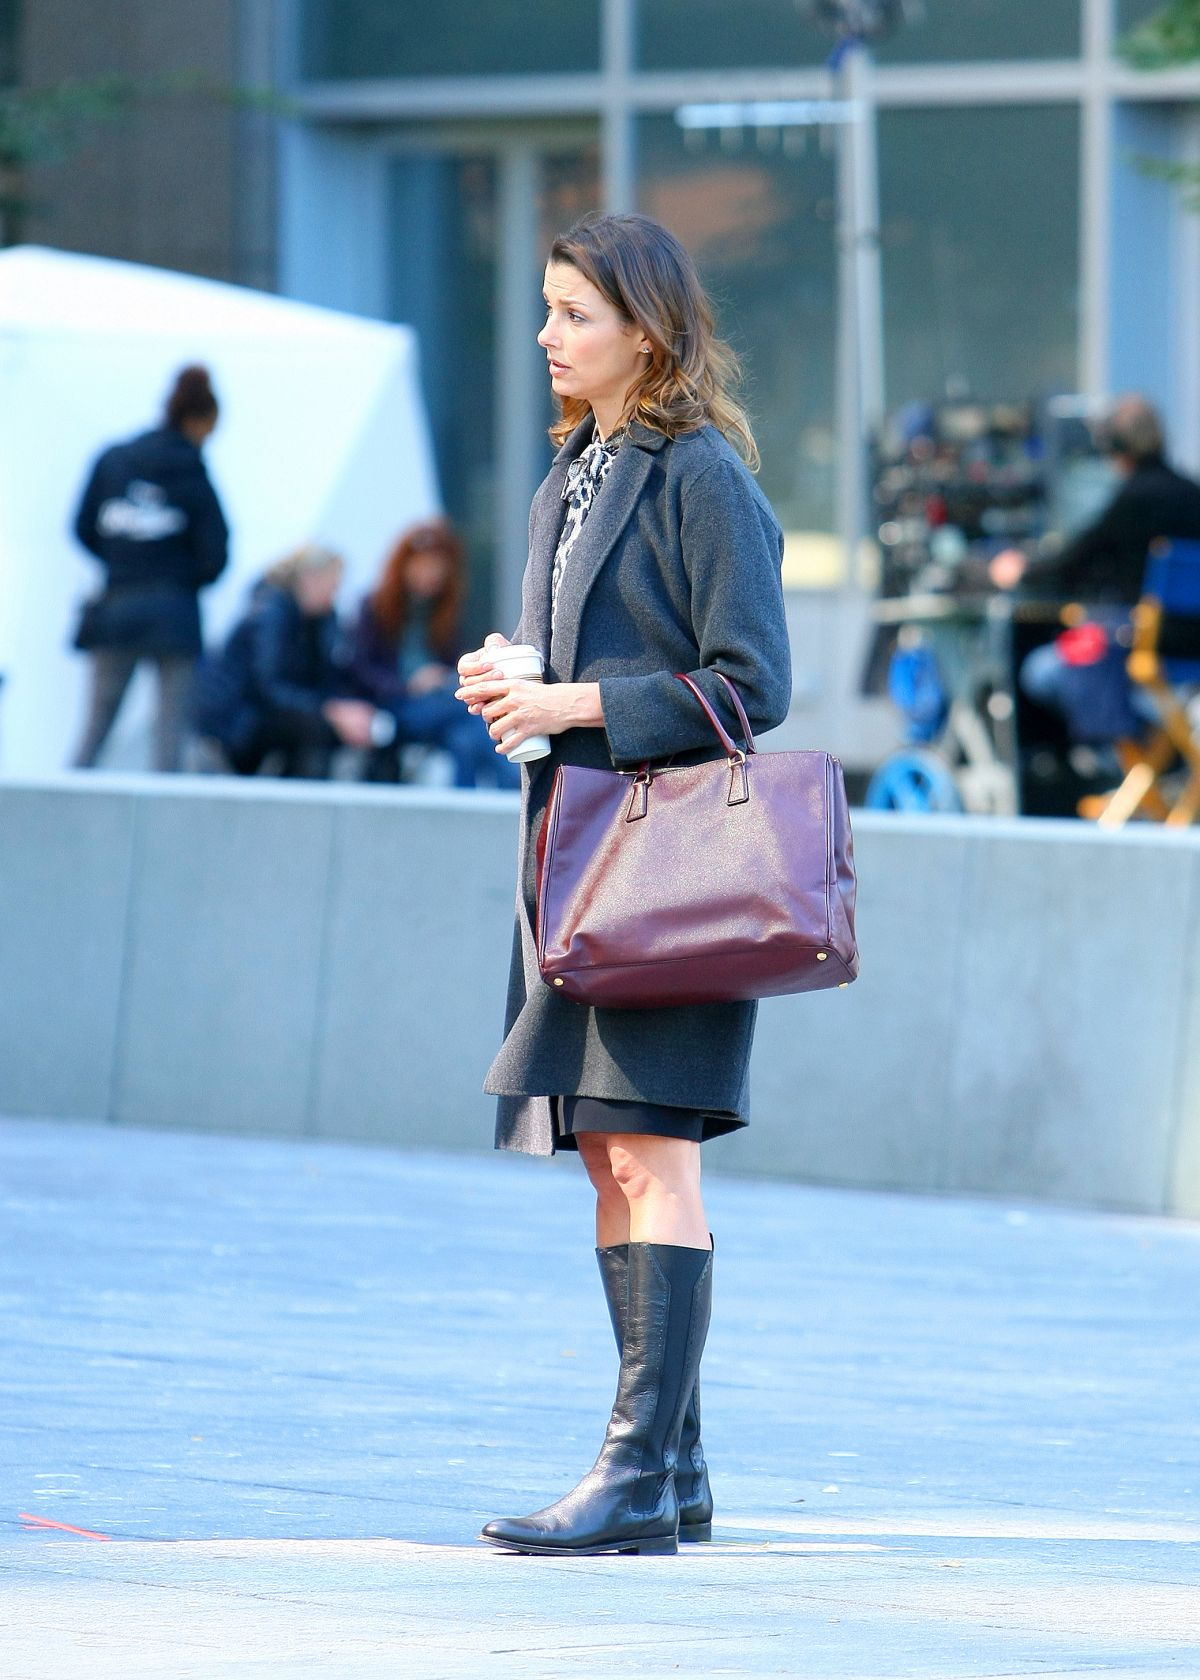 A Few Things You Don't Know about Blue Bloods Star Bridget ...  |Bridget Moynahan Blue Bloods